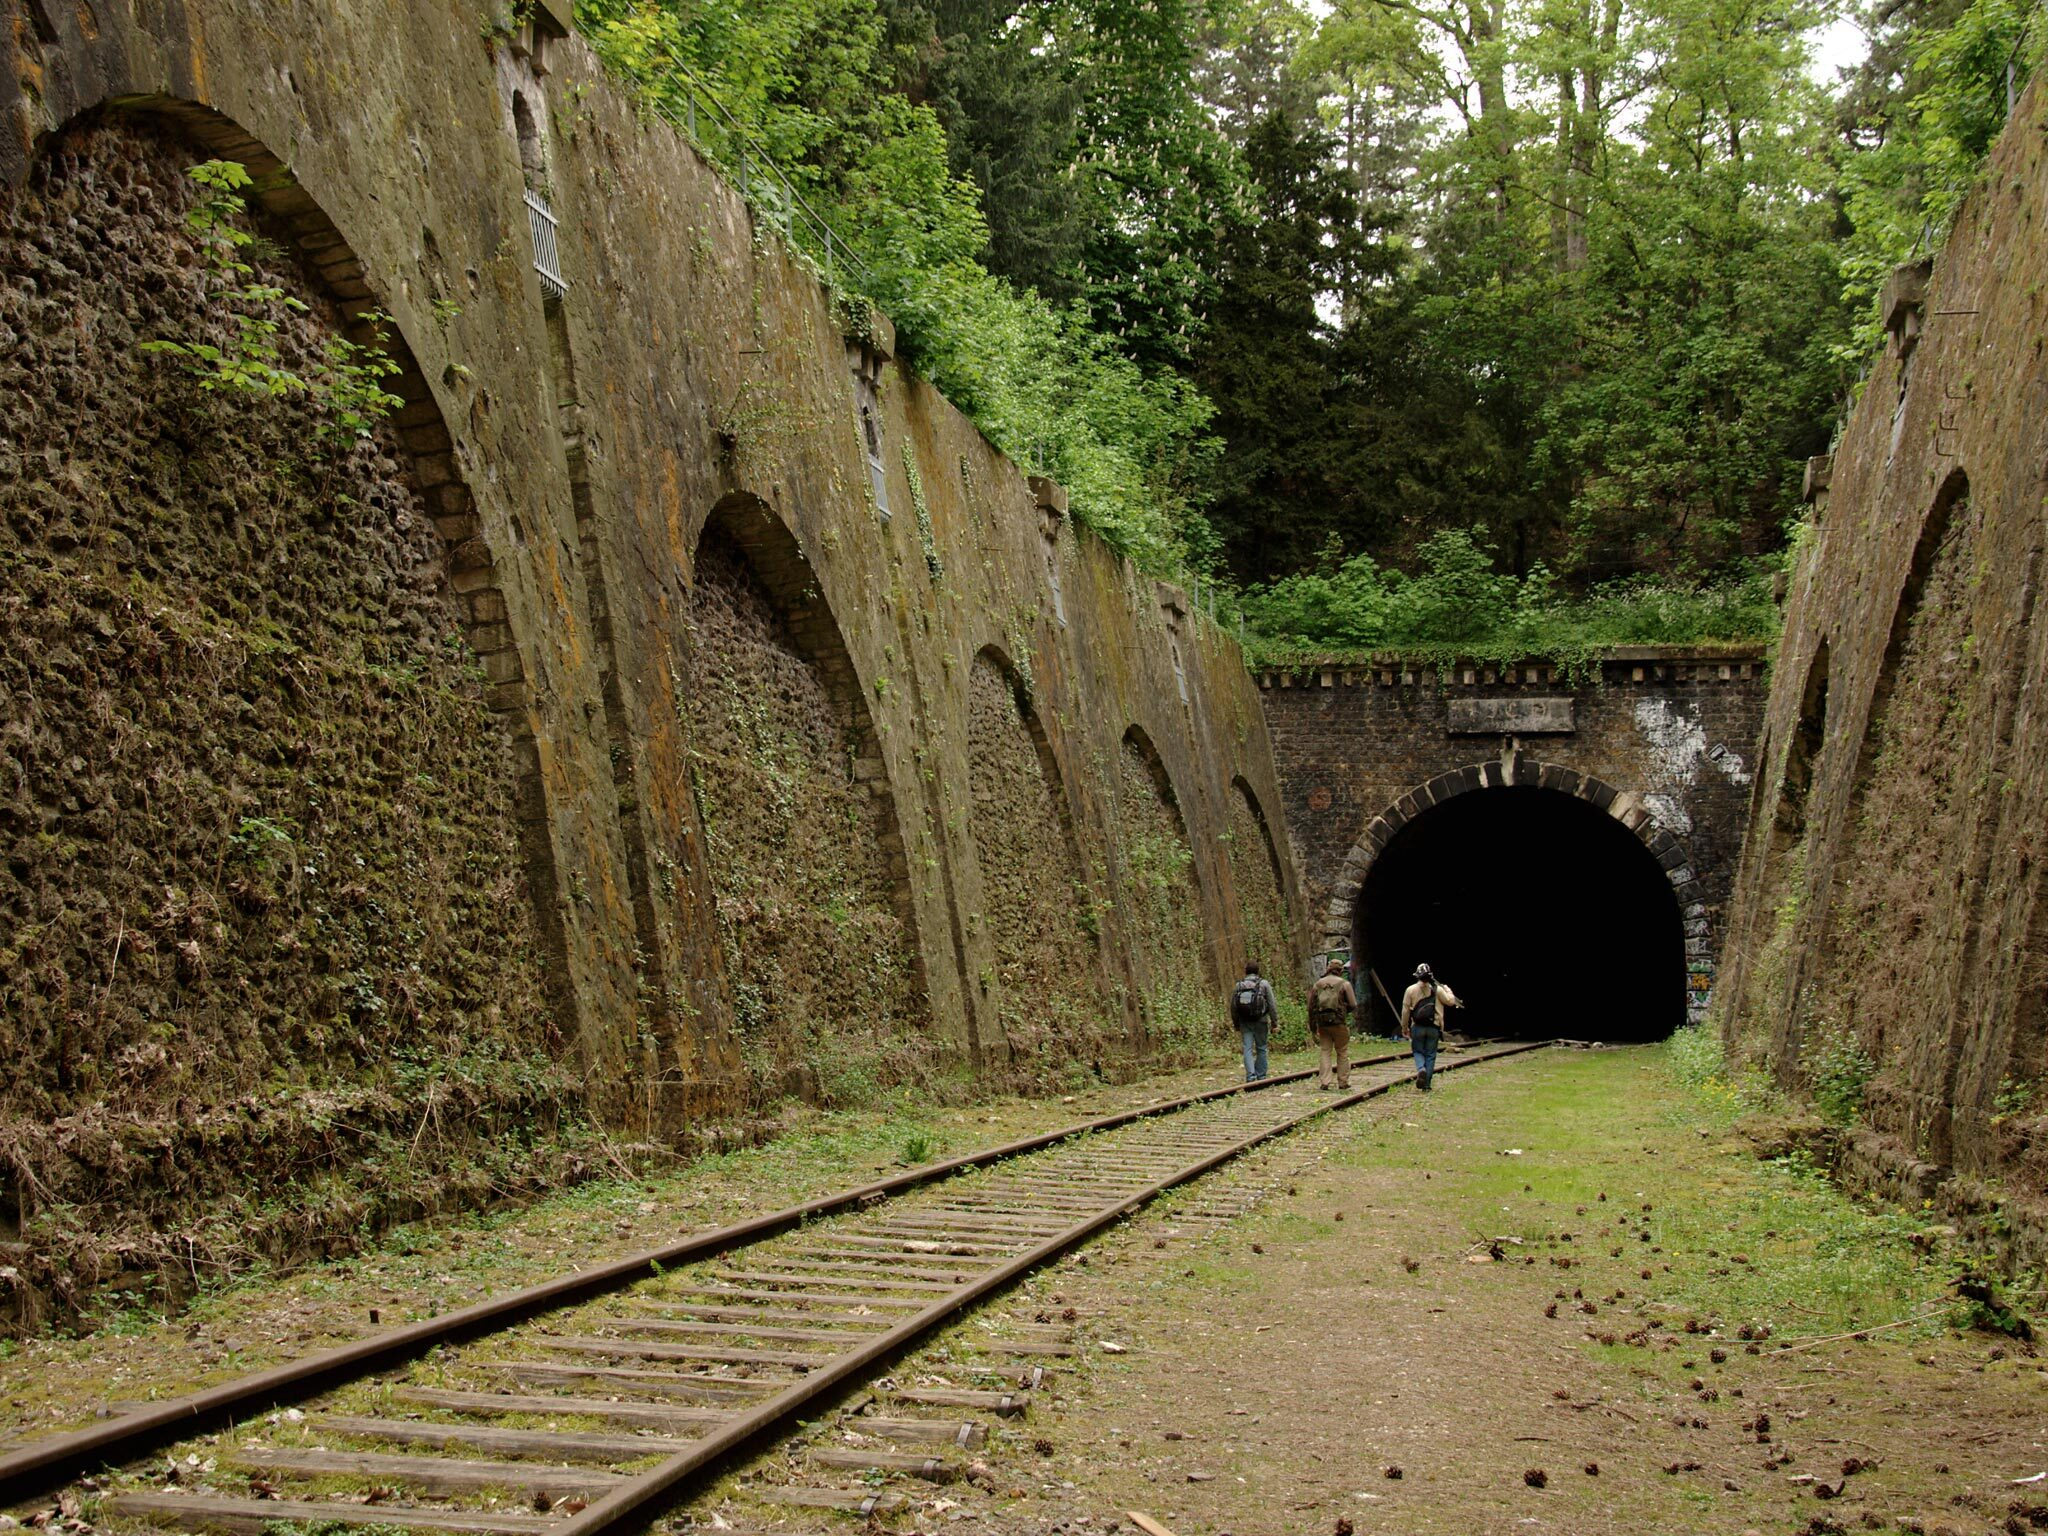 The abandoned railway tracks of the Petite Ceinture in Paris